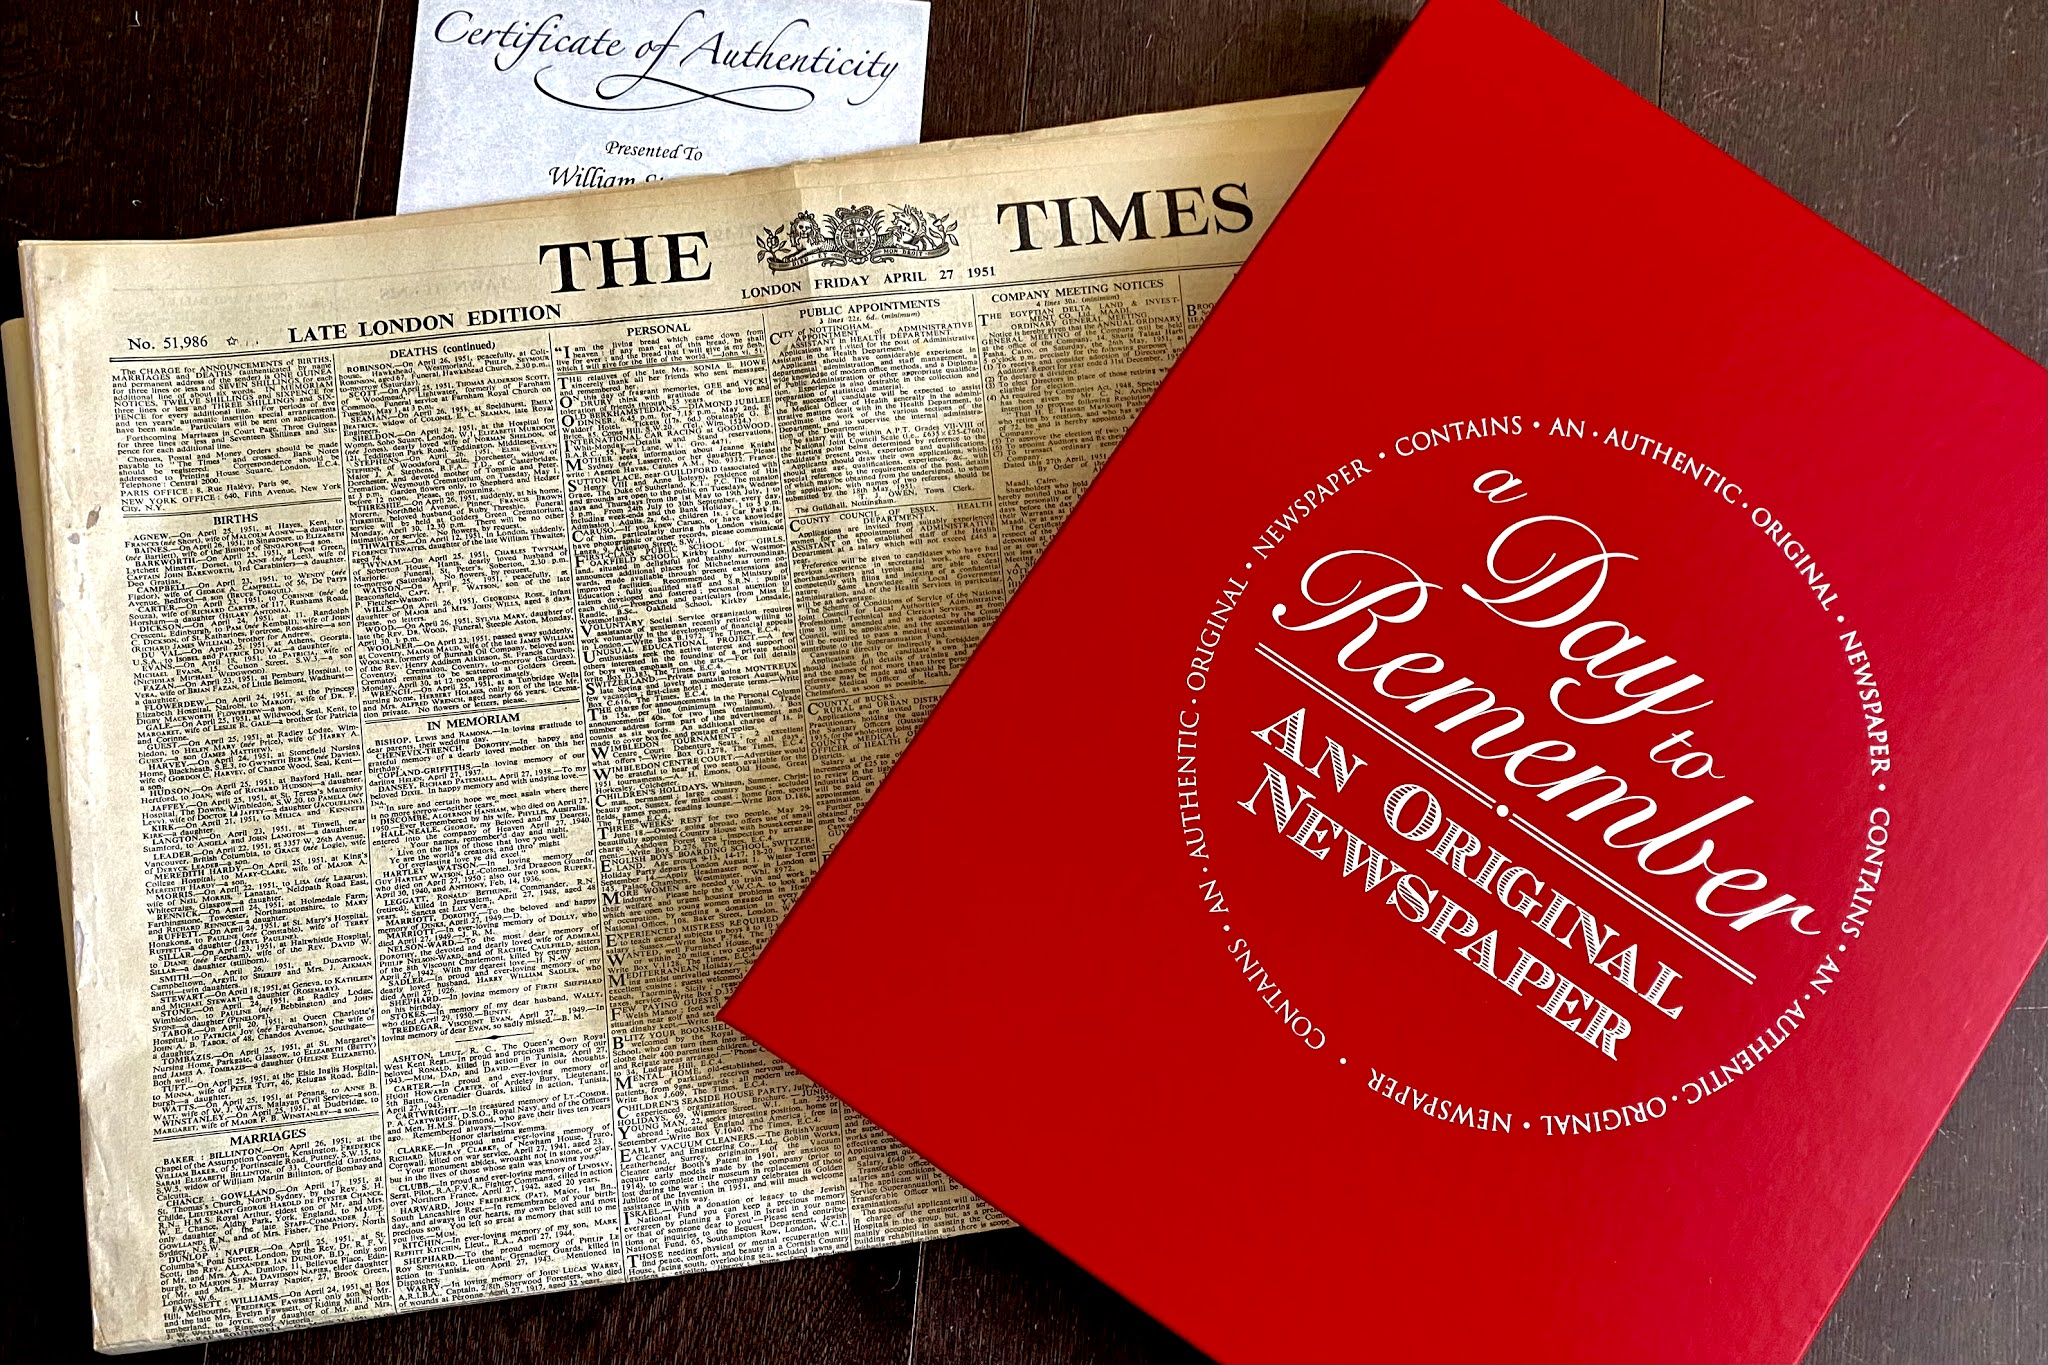 An original copy of The Times newspaper next to a gift box received for a 70th birthday present from Historic Newspapers